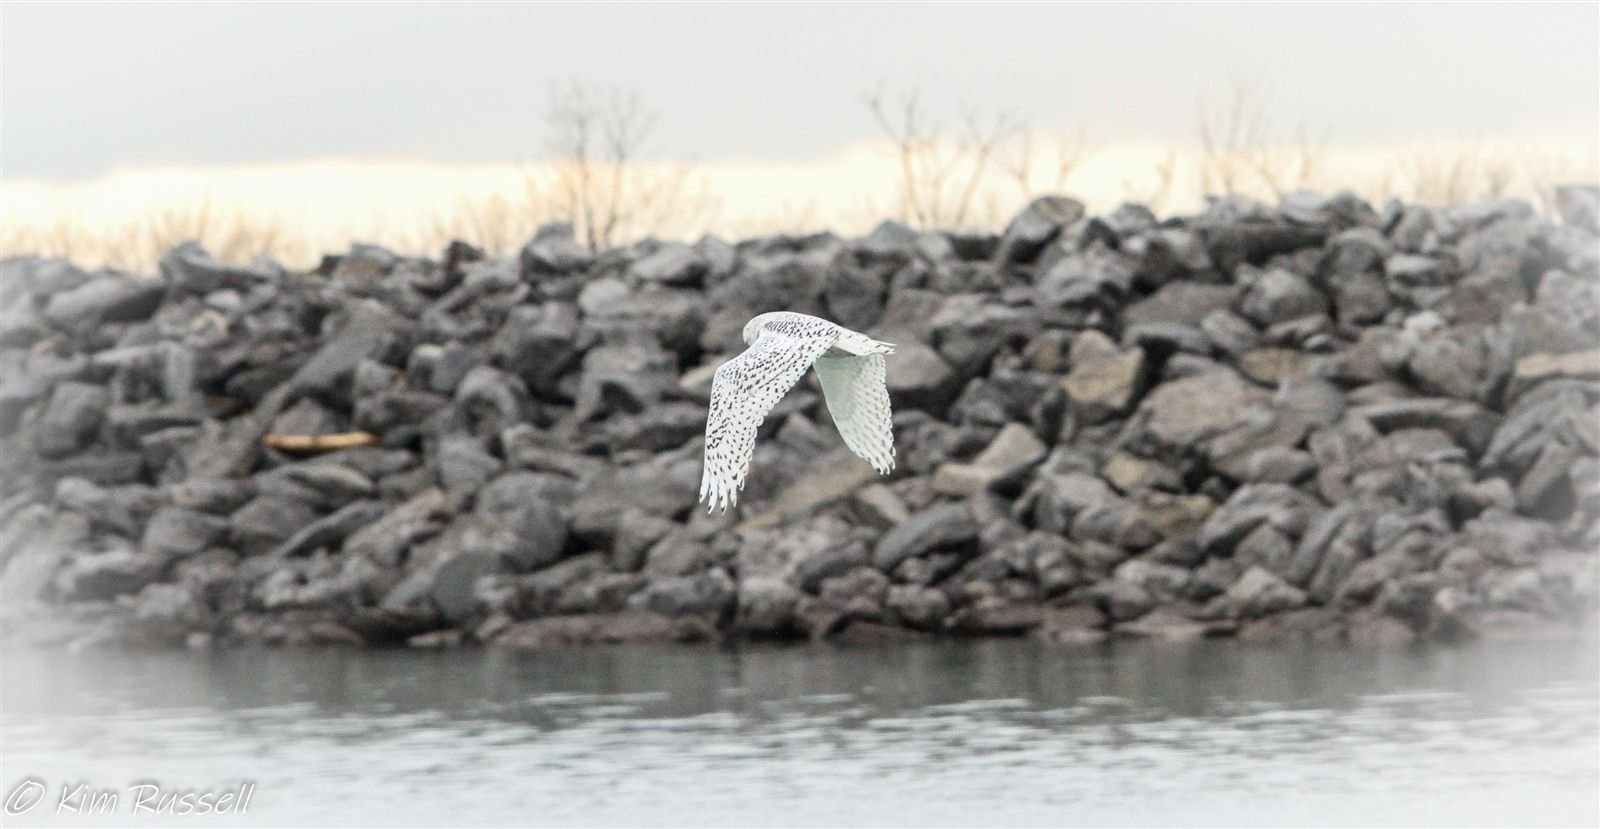 This photo of a snowy owl at flight was captured on Jan. 27, 2020, at the Buffalo Harbor State Park.